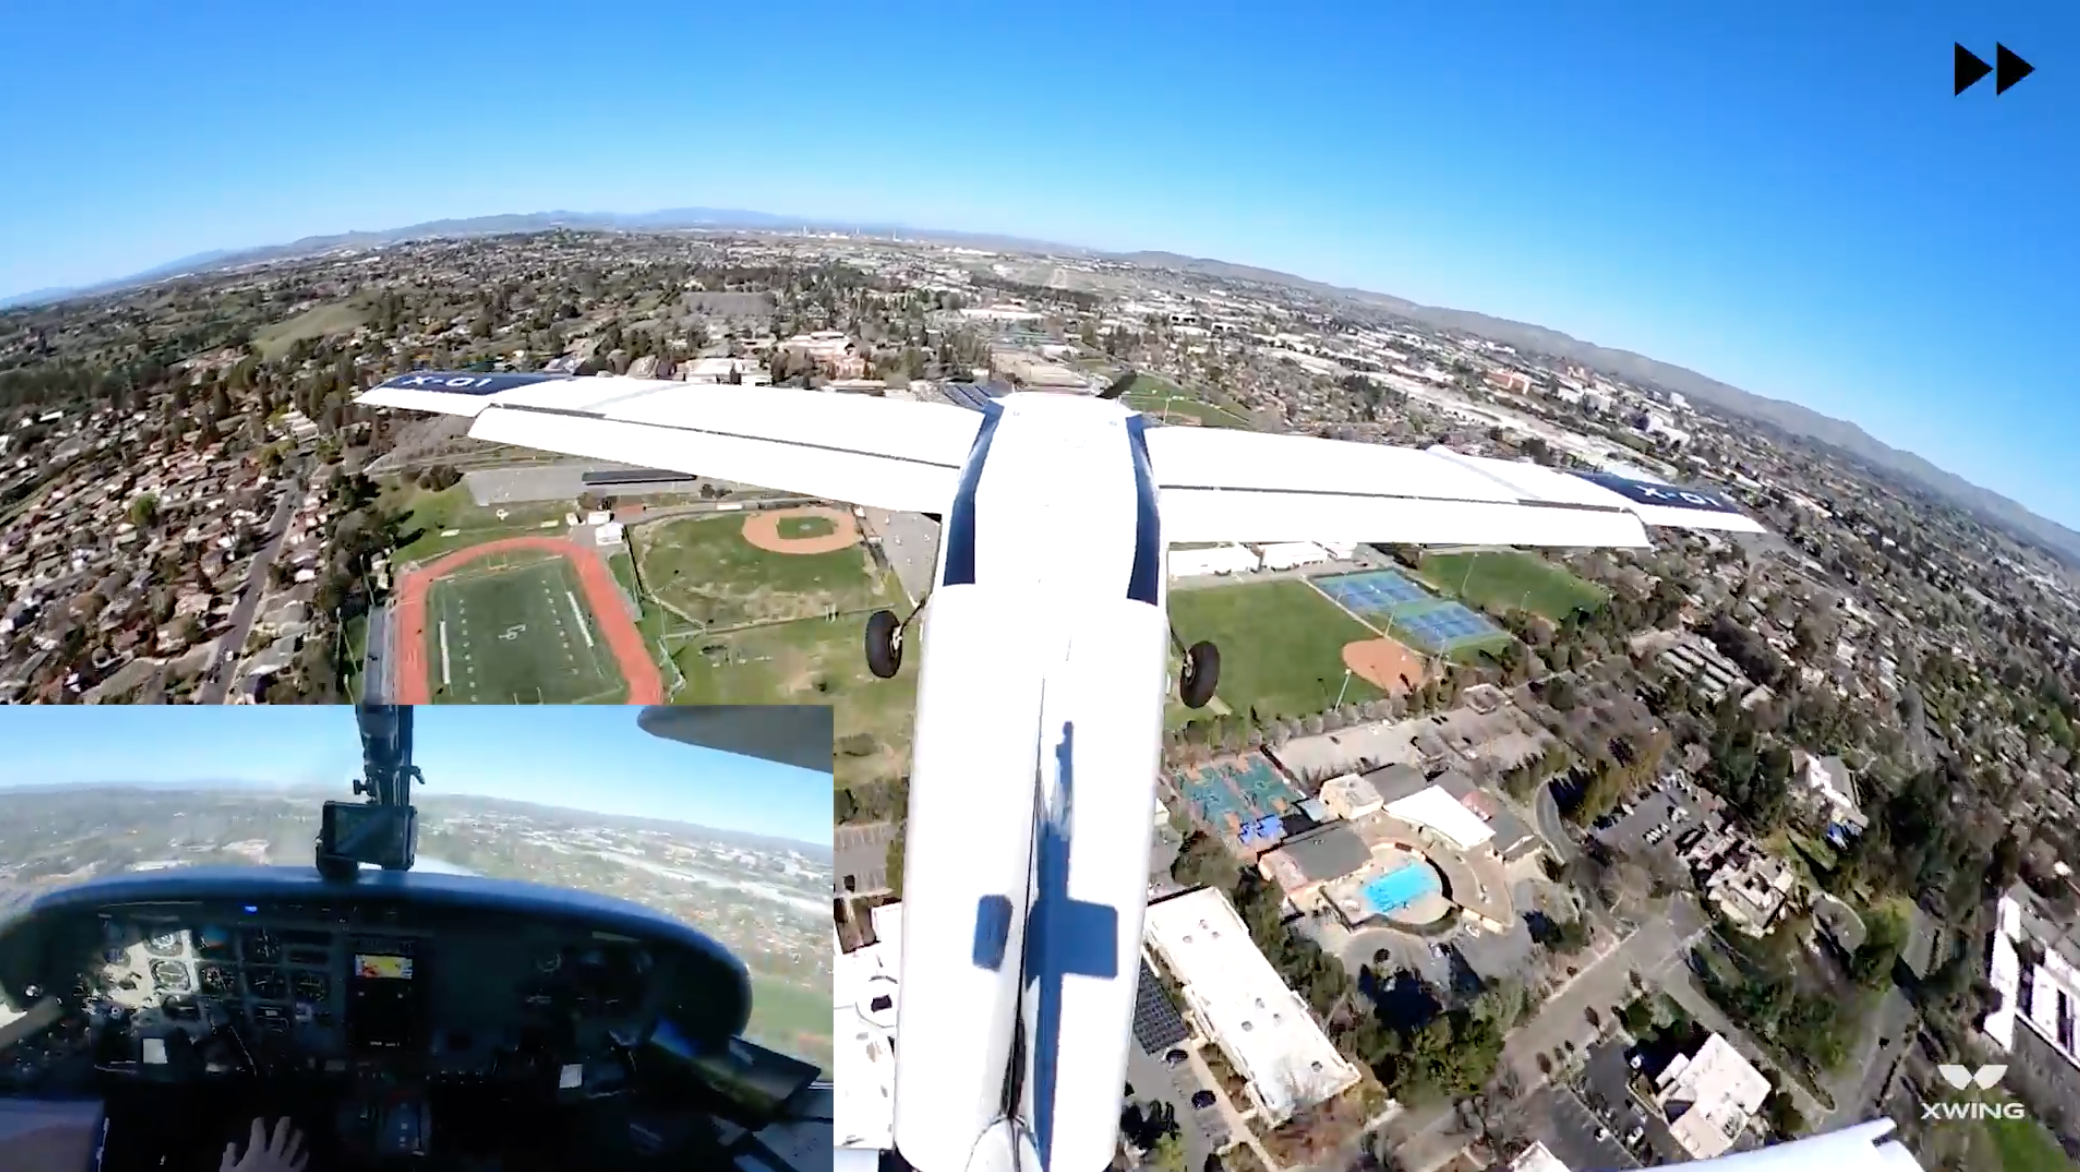 Autonomous aviation startup Xwing hits $400M valuation after latest funding round